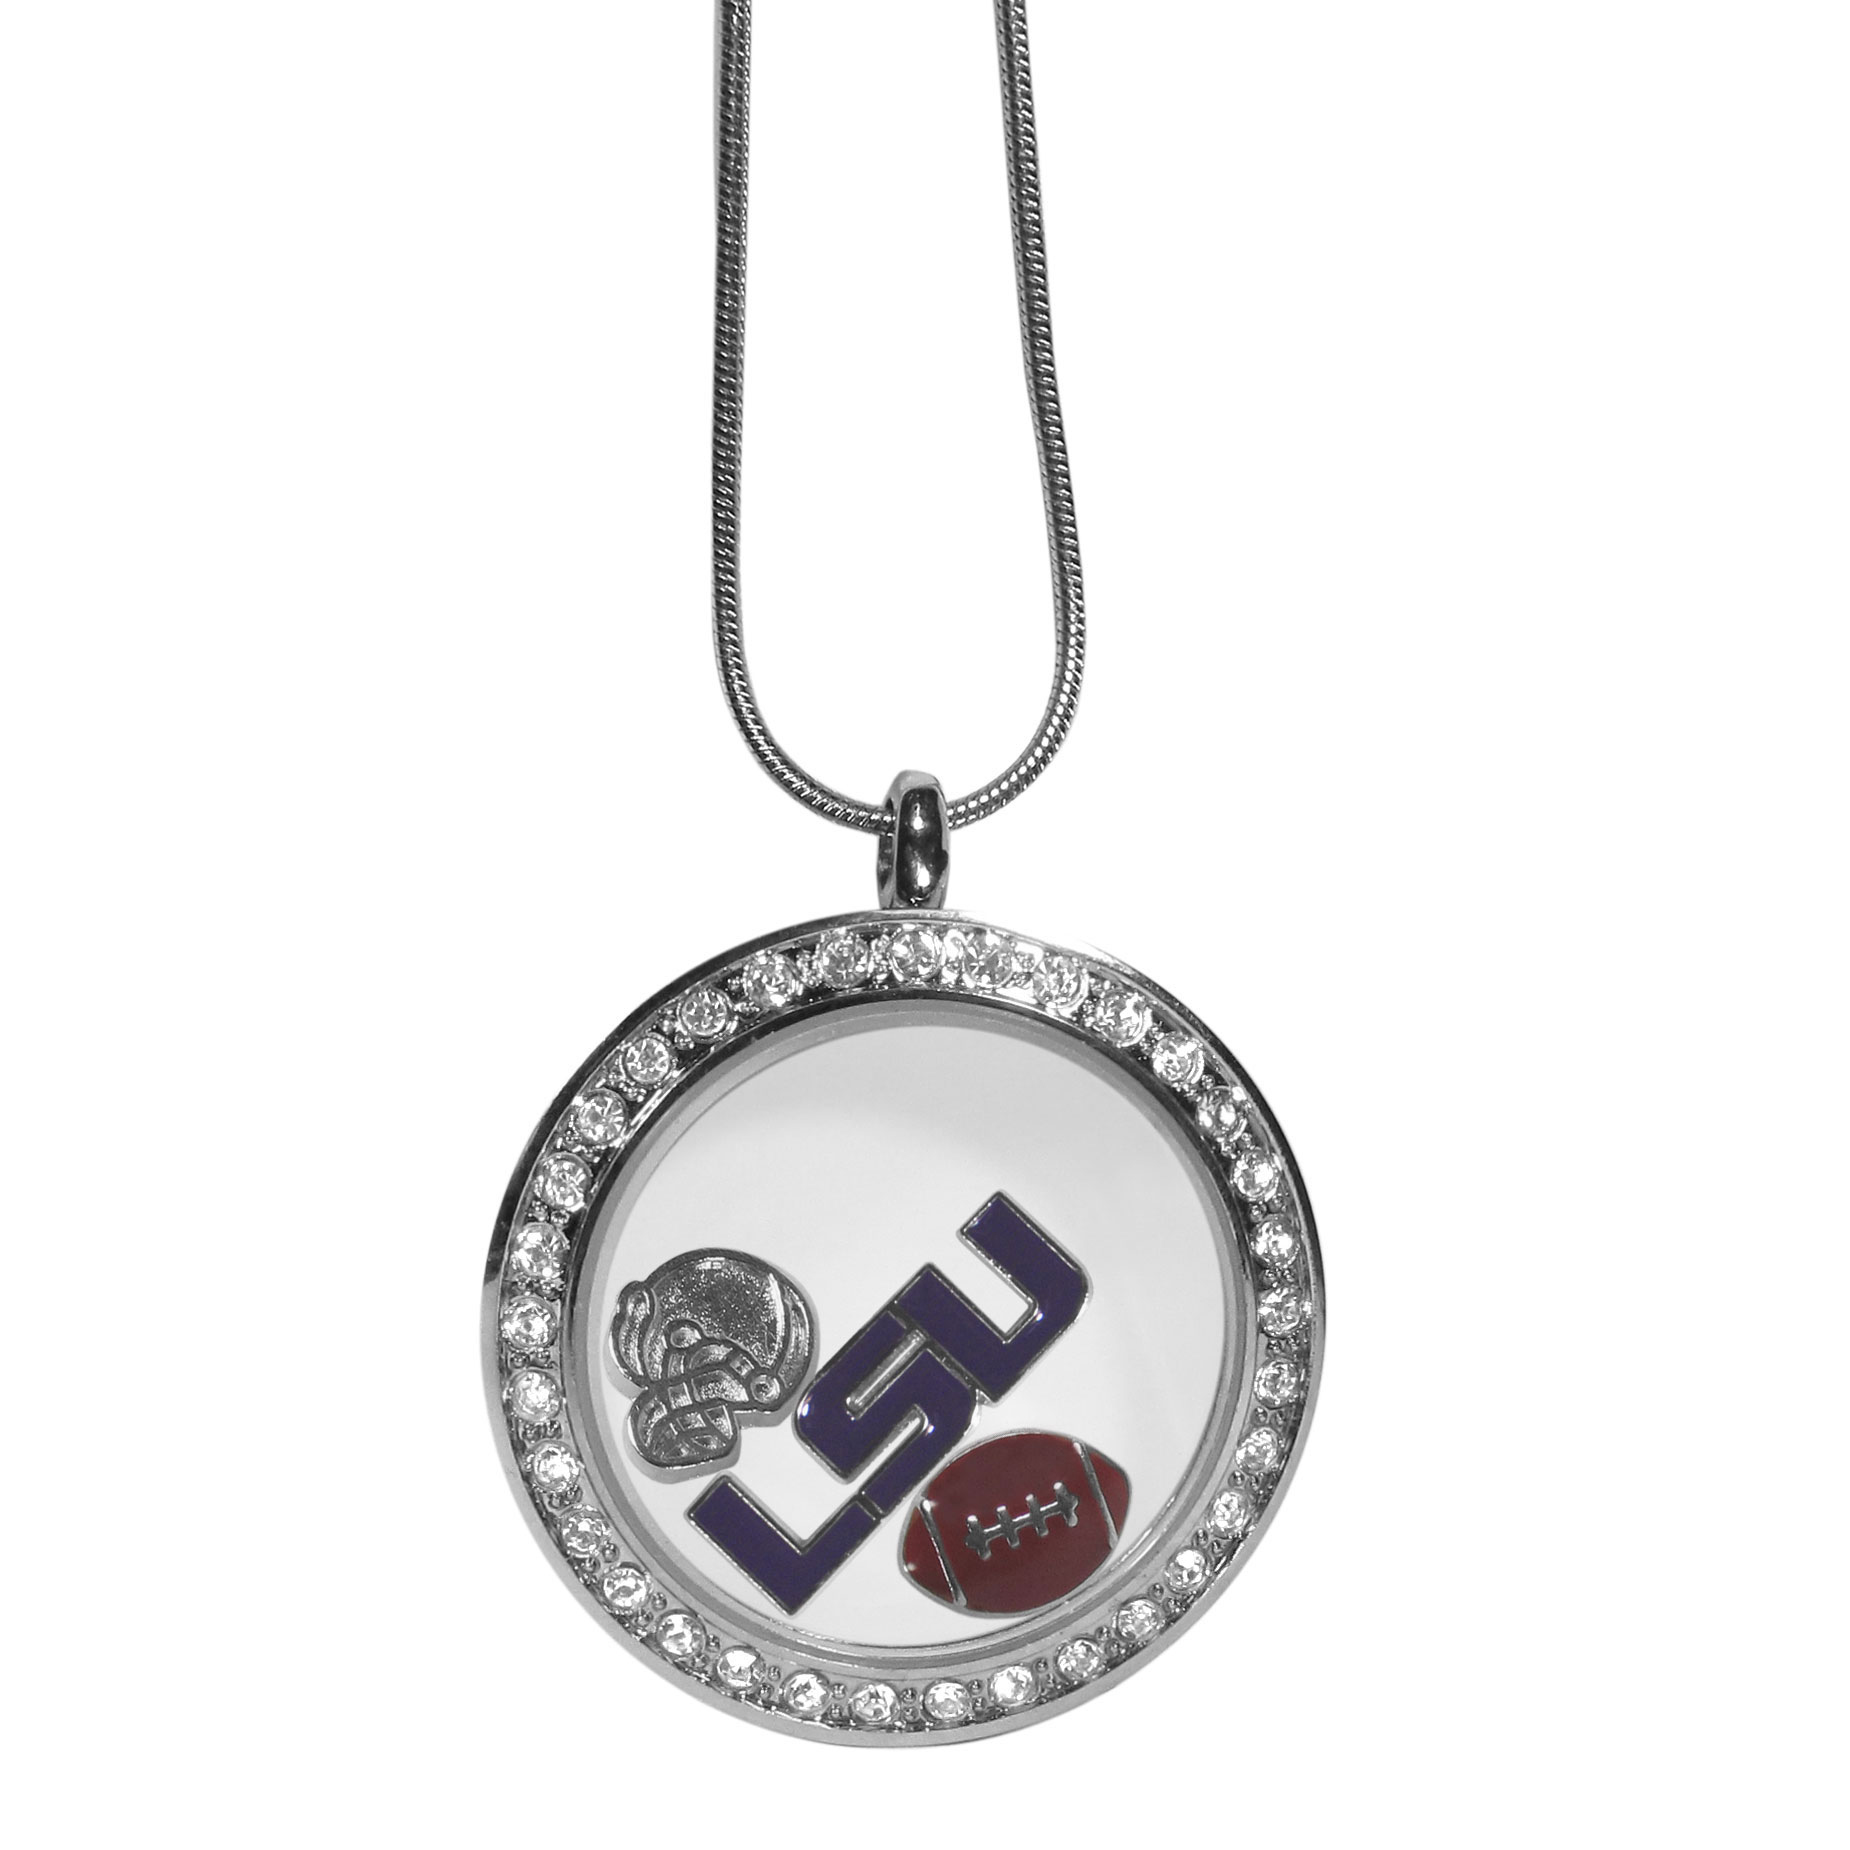 LSU Tigers Locket Necklace - We have taken the classic floating charm locket and combined with licensed sports charms to create a must have fan necklace. The necklace comes with 3 charms; 1 LSU Tigers charm, one football charm and one helmet charm. The charms float in a beautiful locket that has a strong magnetic closure with a rhinestone border. The locket comes on an 18 inch snake chain with 2 inch extender.